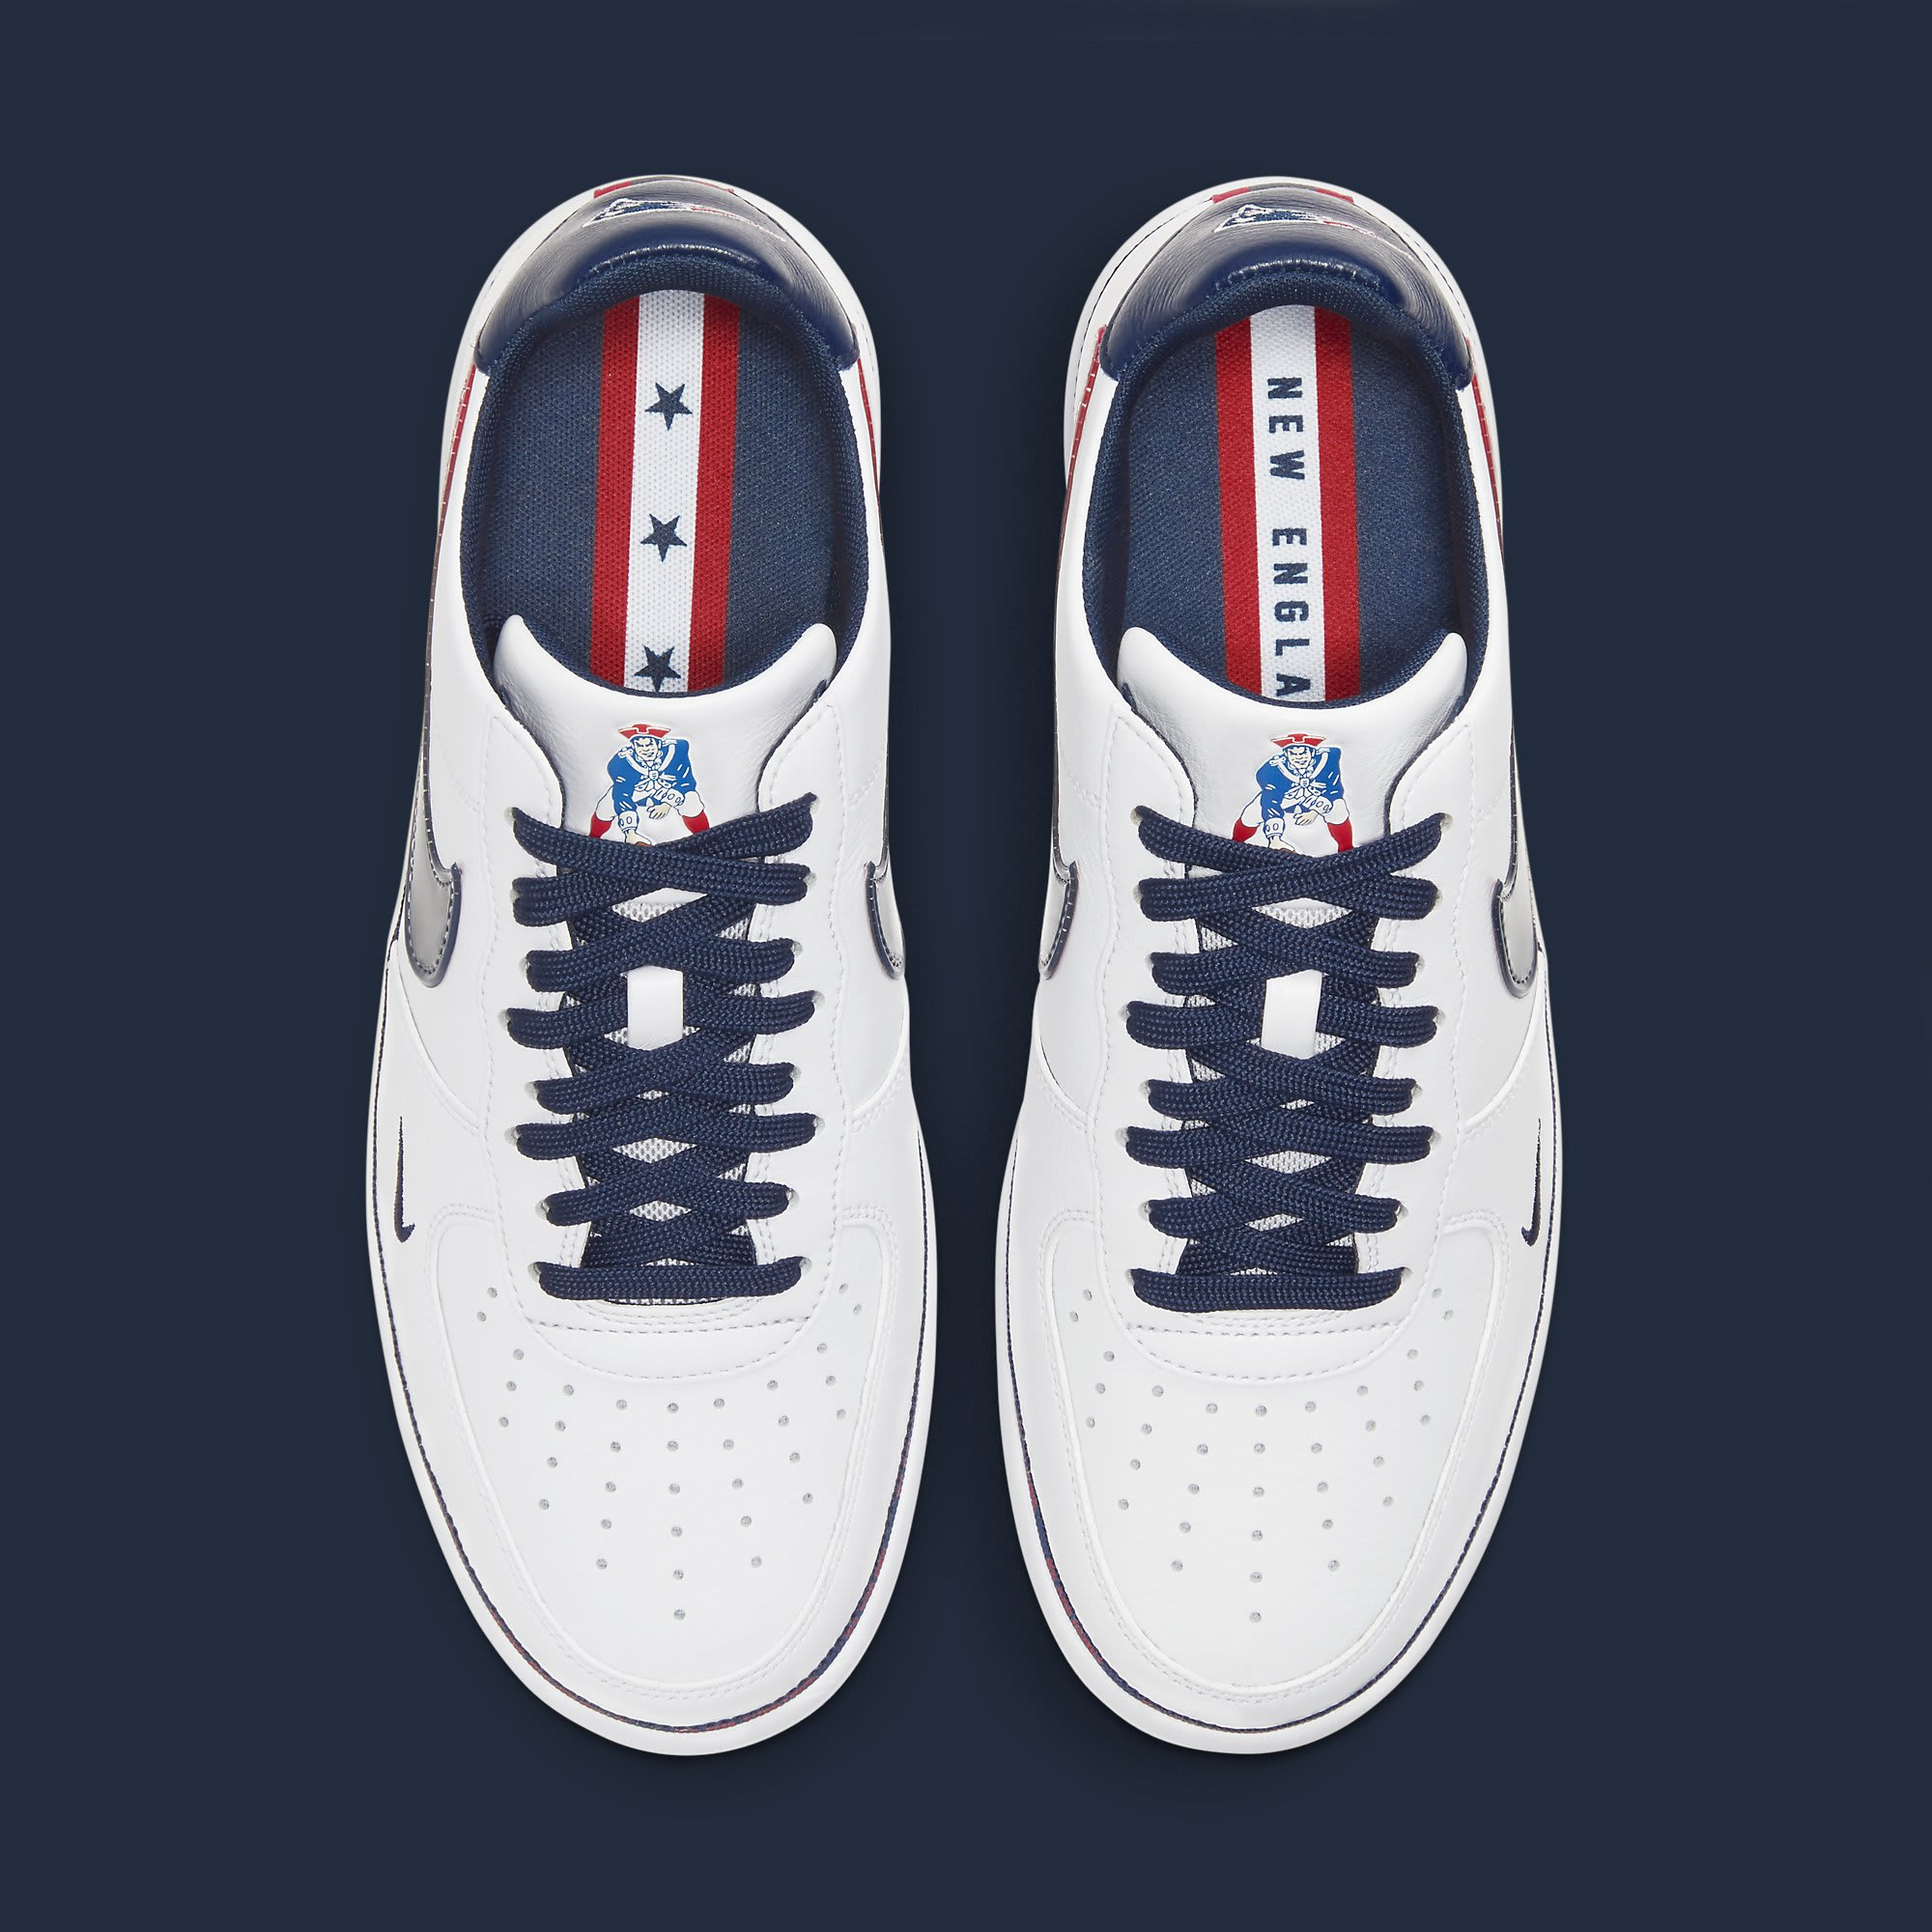 Nike Air Force 1 Ultraforce 'New England Patriots' DB6316-100 Top